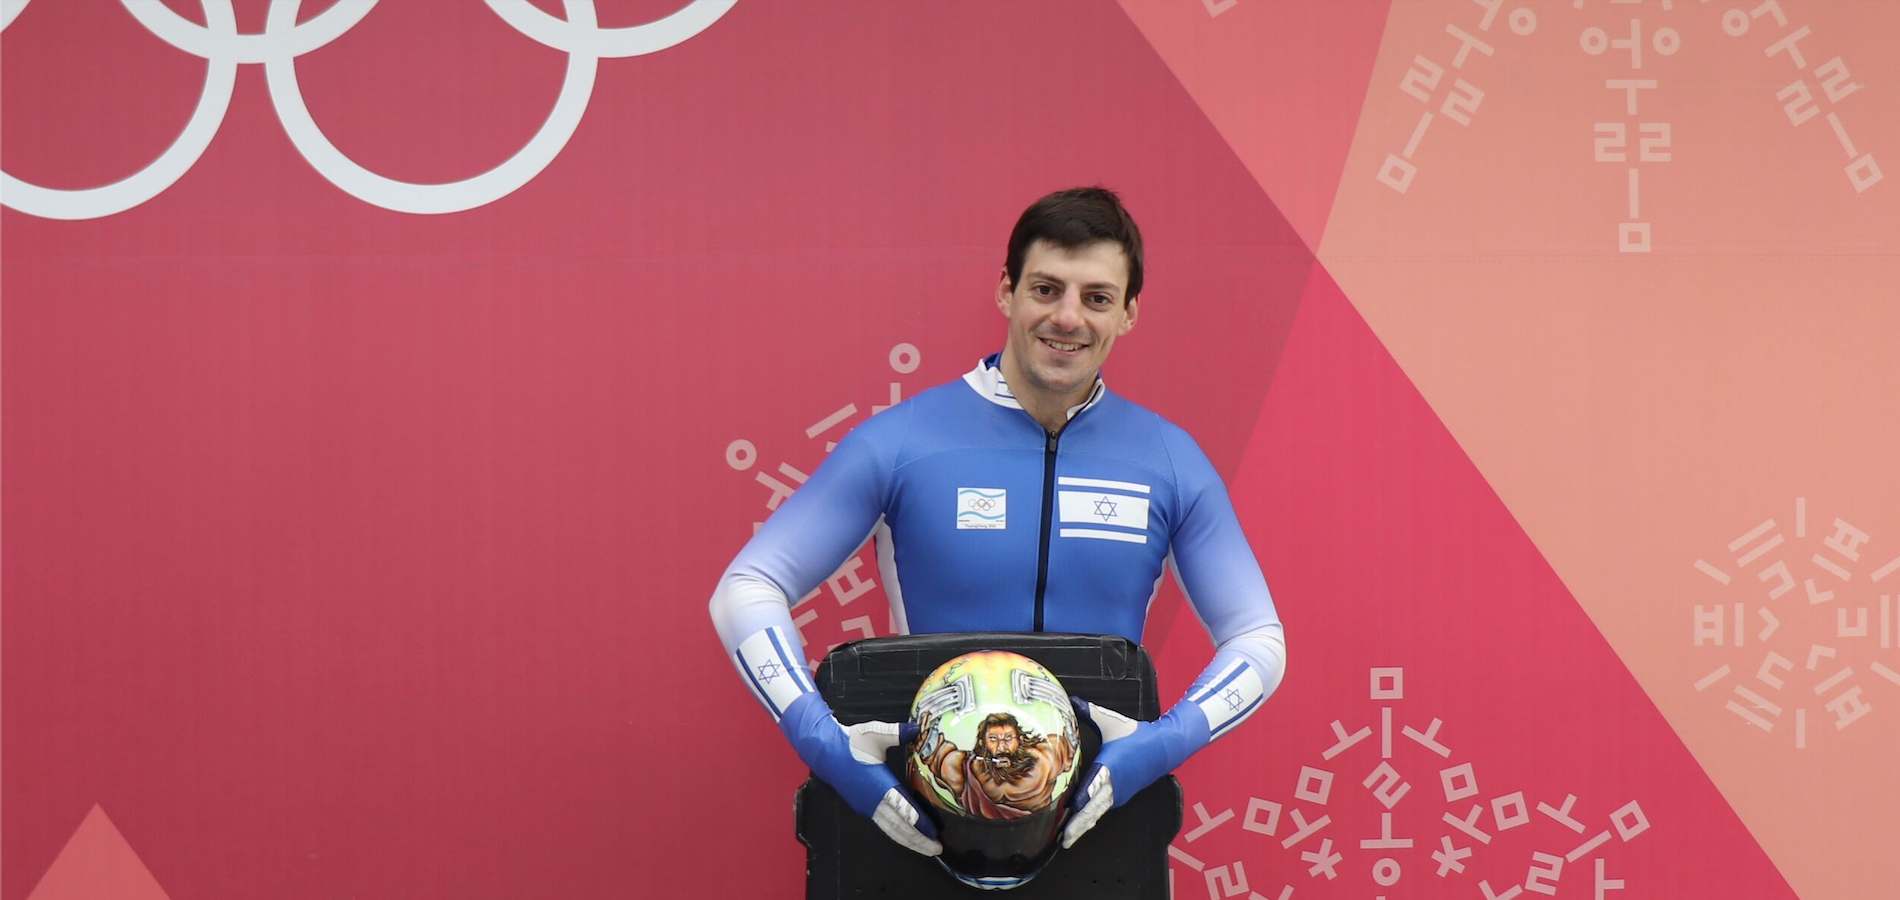 AJ Edelman, the first and only Orthodox Jewish man to compete in the Olympics